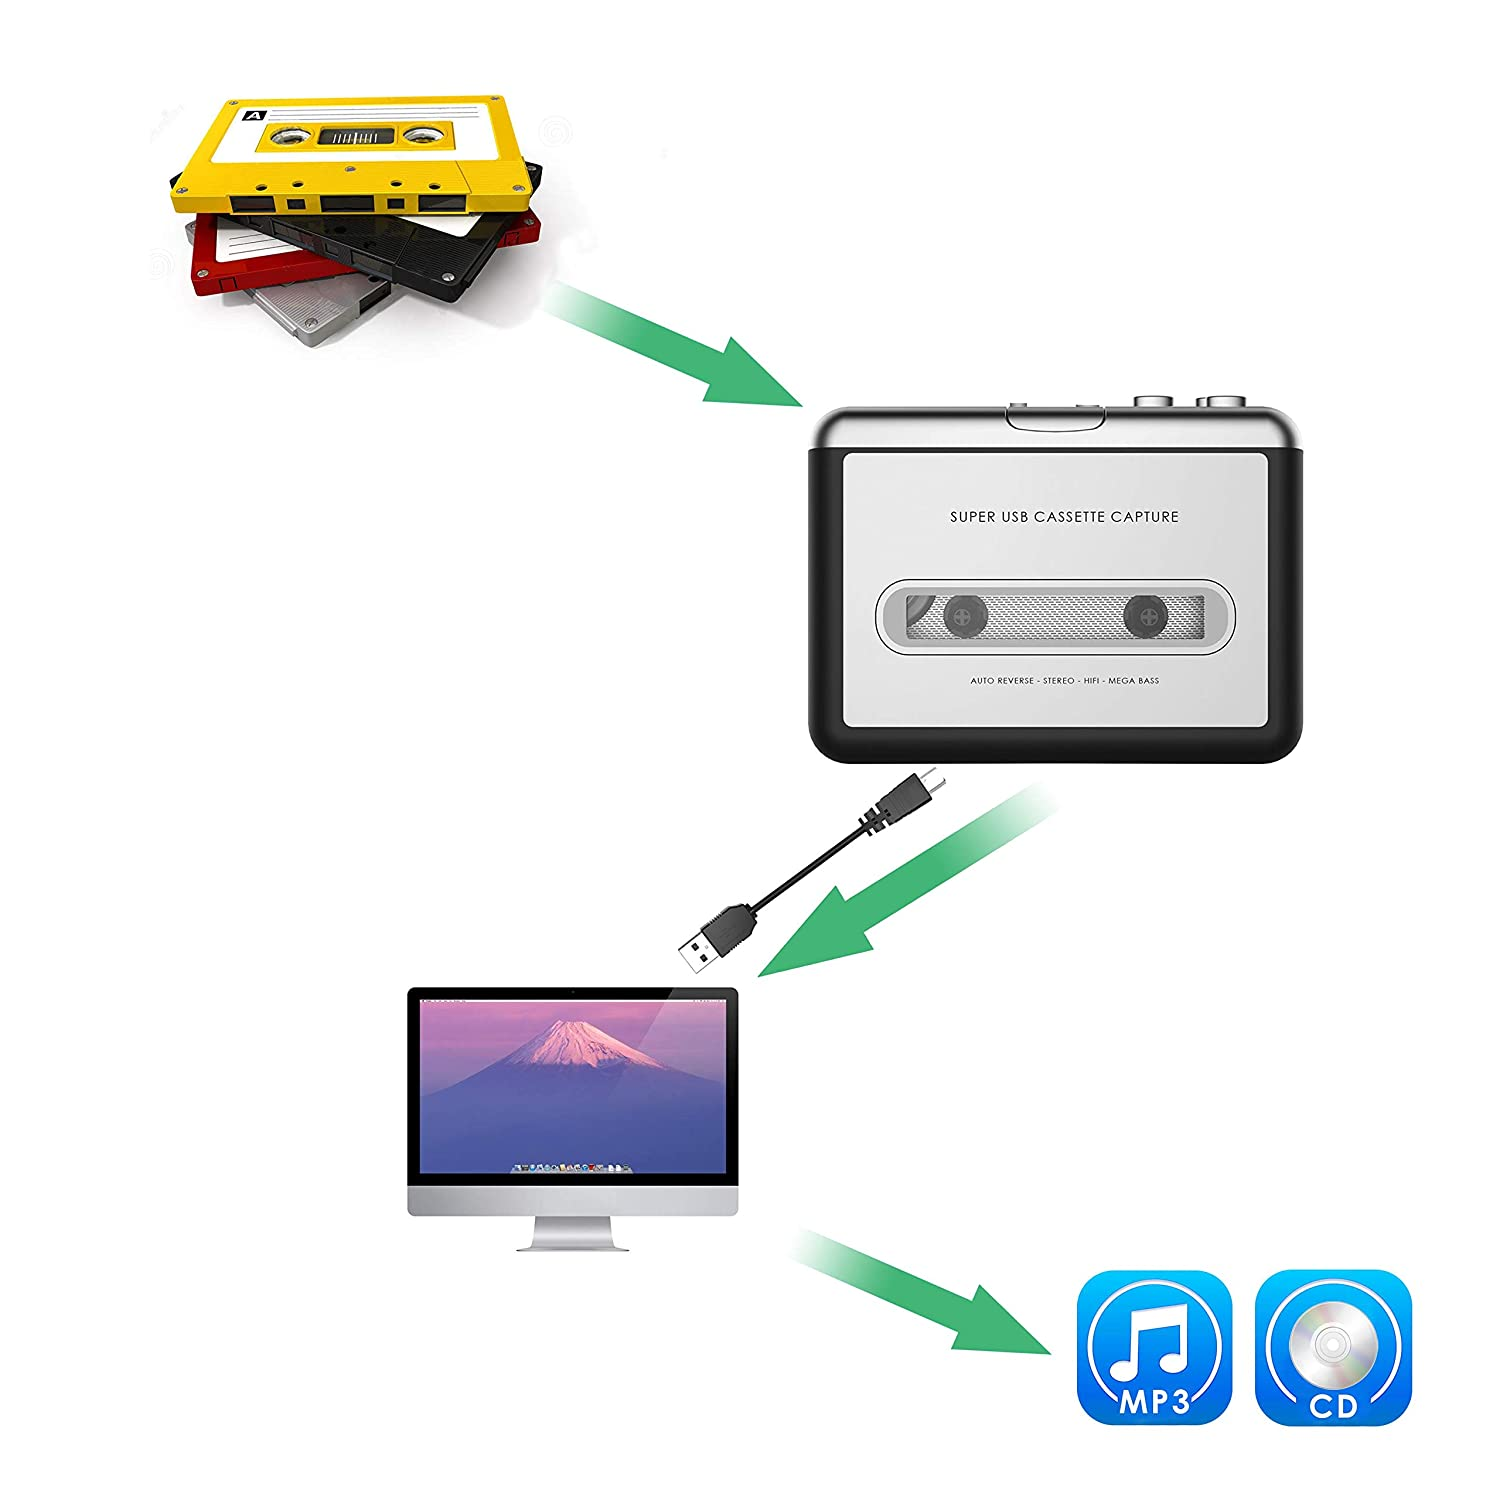 2019 Updated Cassette to MP3 Converter USB Cassette Player from Tapes to MP3 Converter for Laptop PC and Mac with Headphones Window iOS Convert Walkman Cassettes to Digital Format